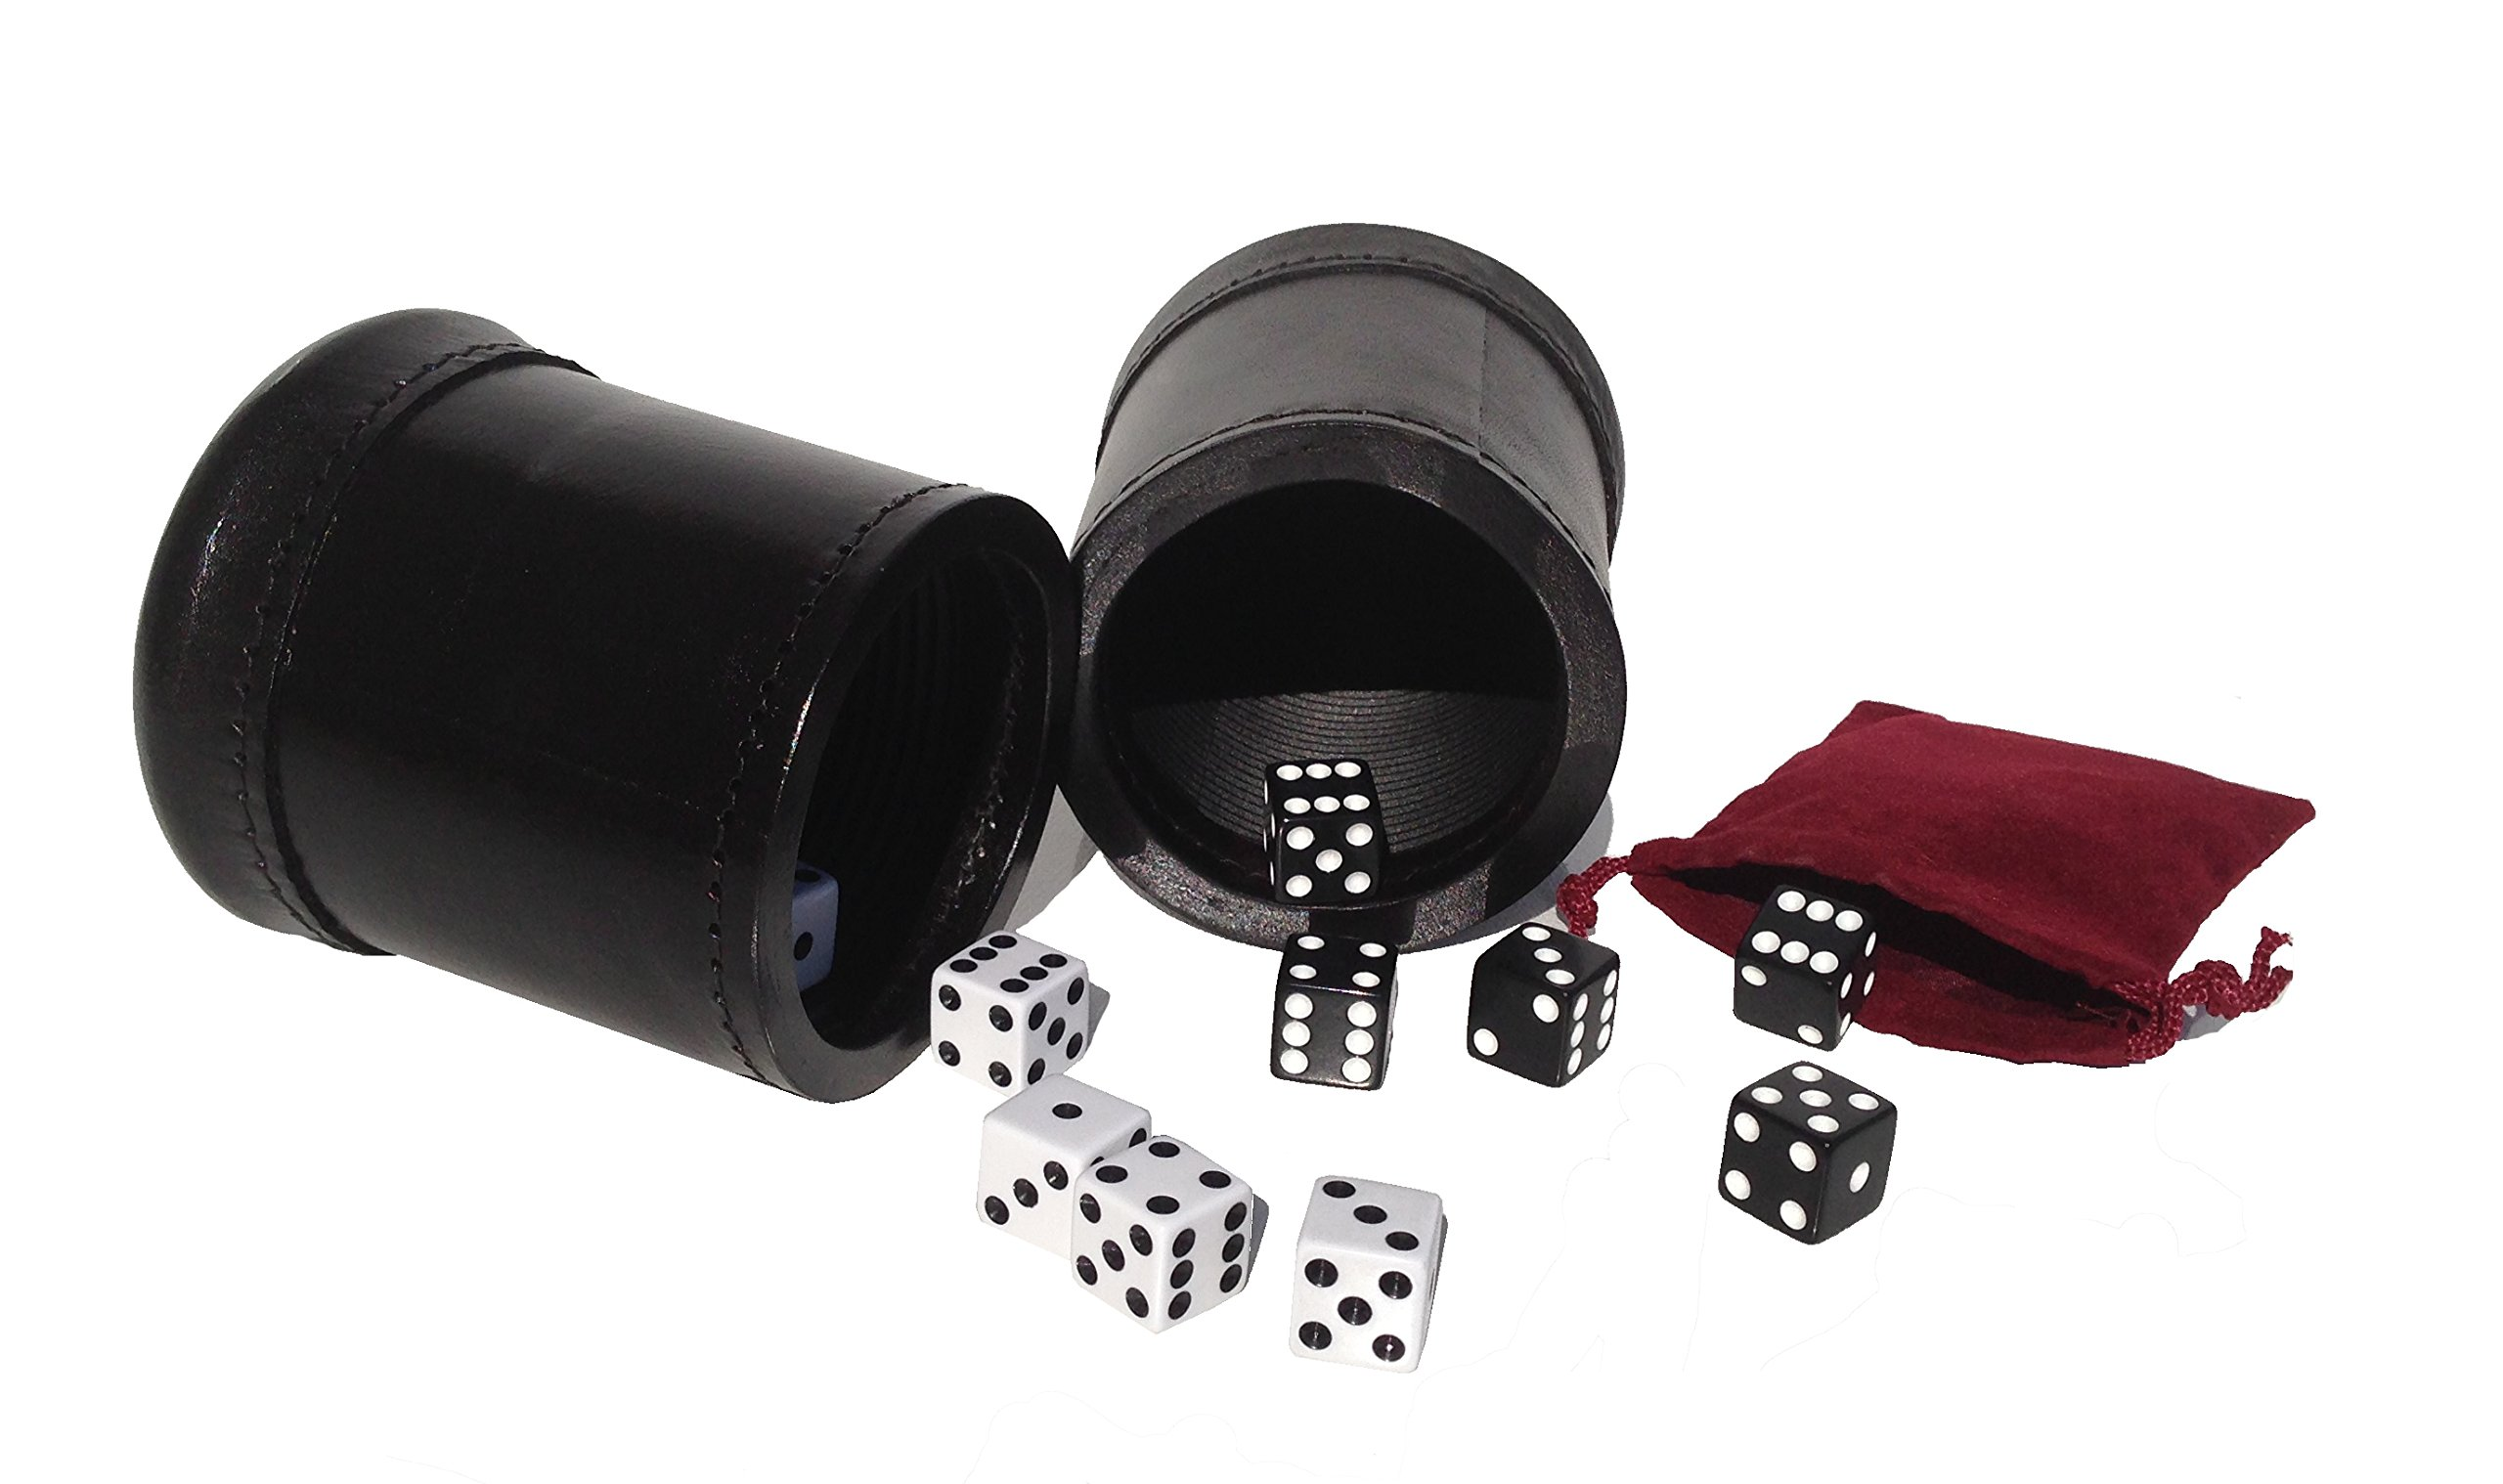 Golden Gate Dice Cup Set of 2 With 10 ''Tuxedo'' Dice, a Drawstring Pouch and a Book of Dice Games (Includes Liar's Dice)